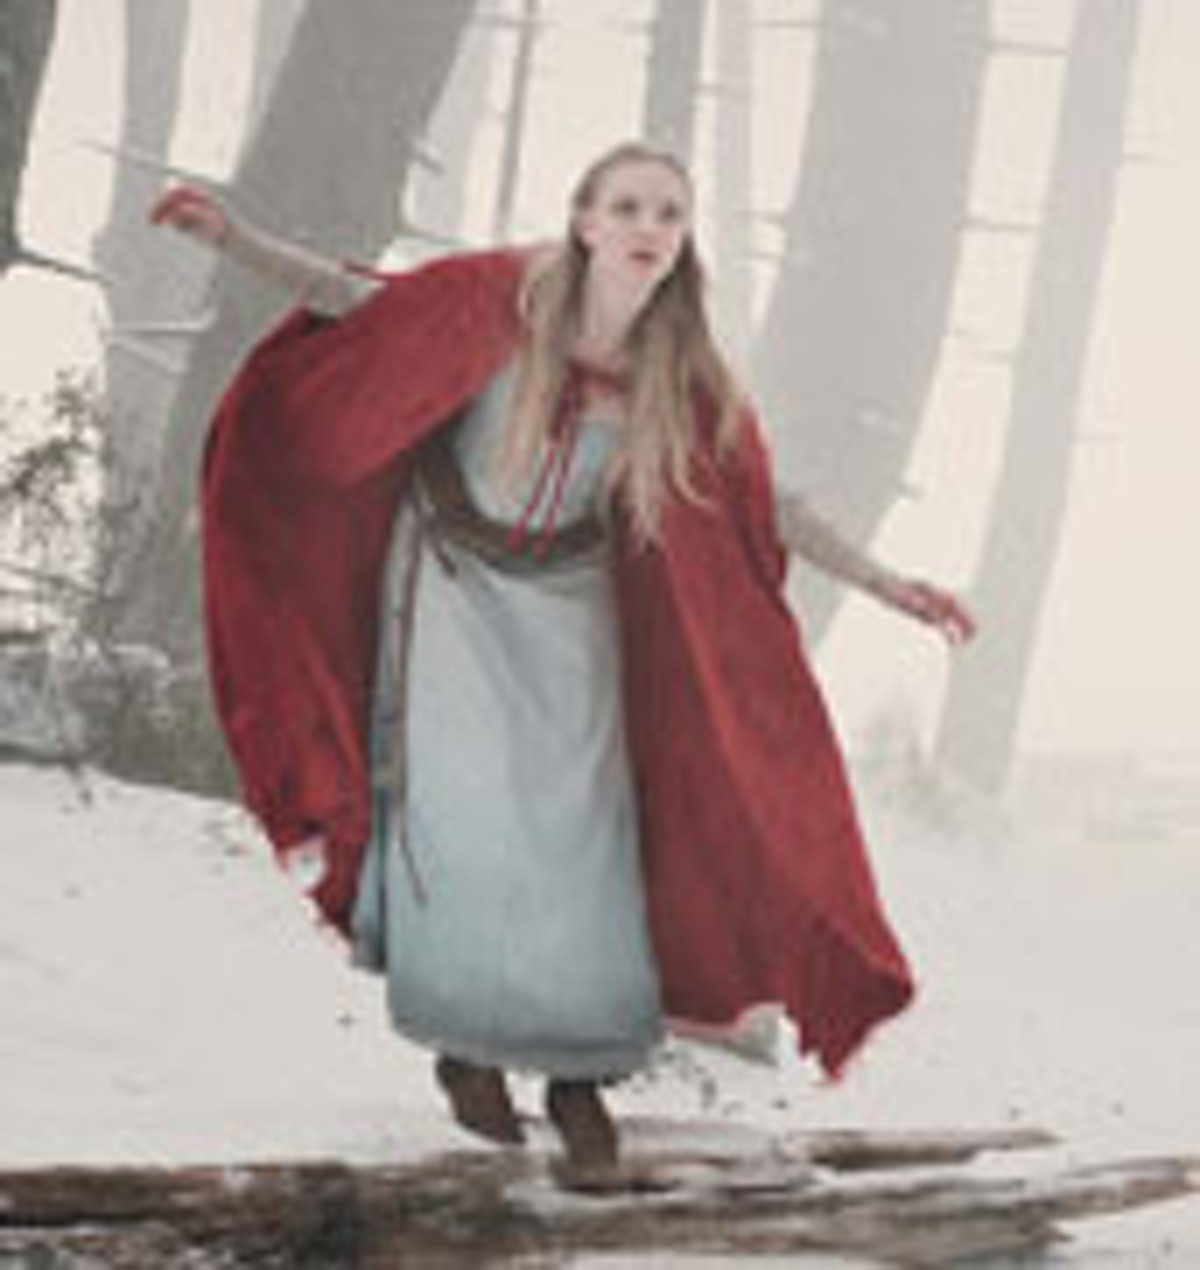 cess_red_riding_hood_search.jpg